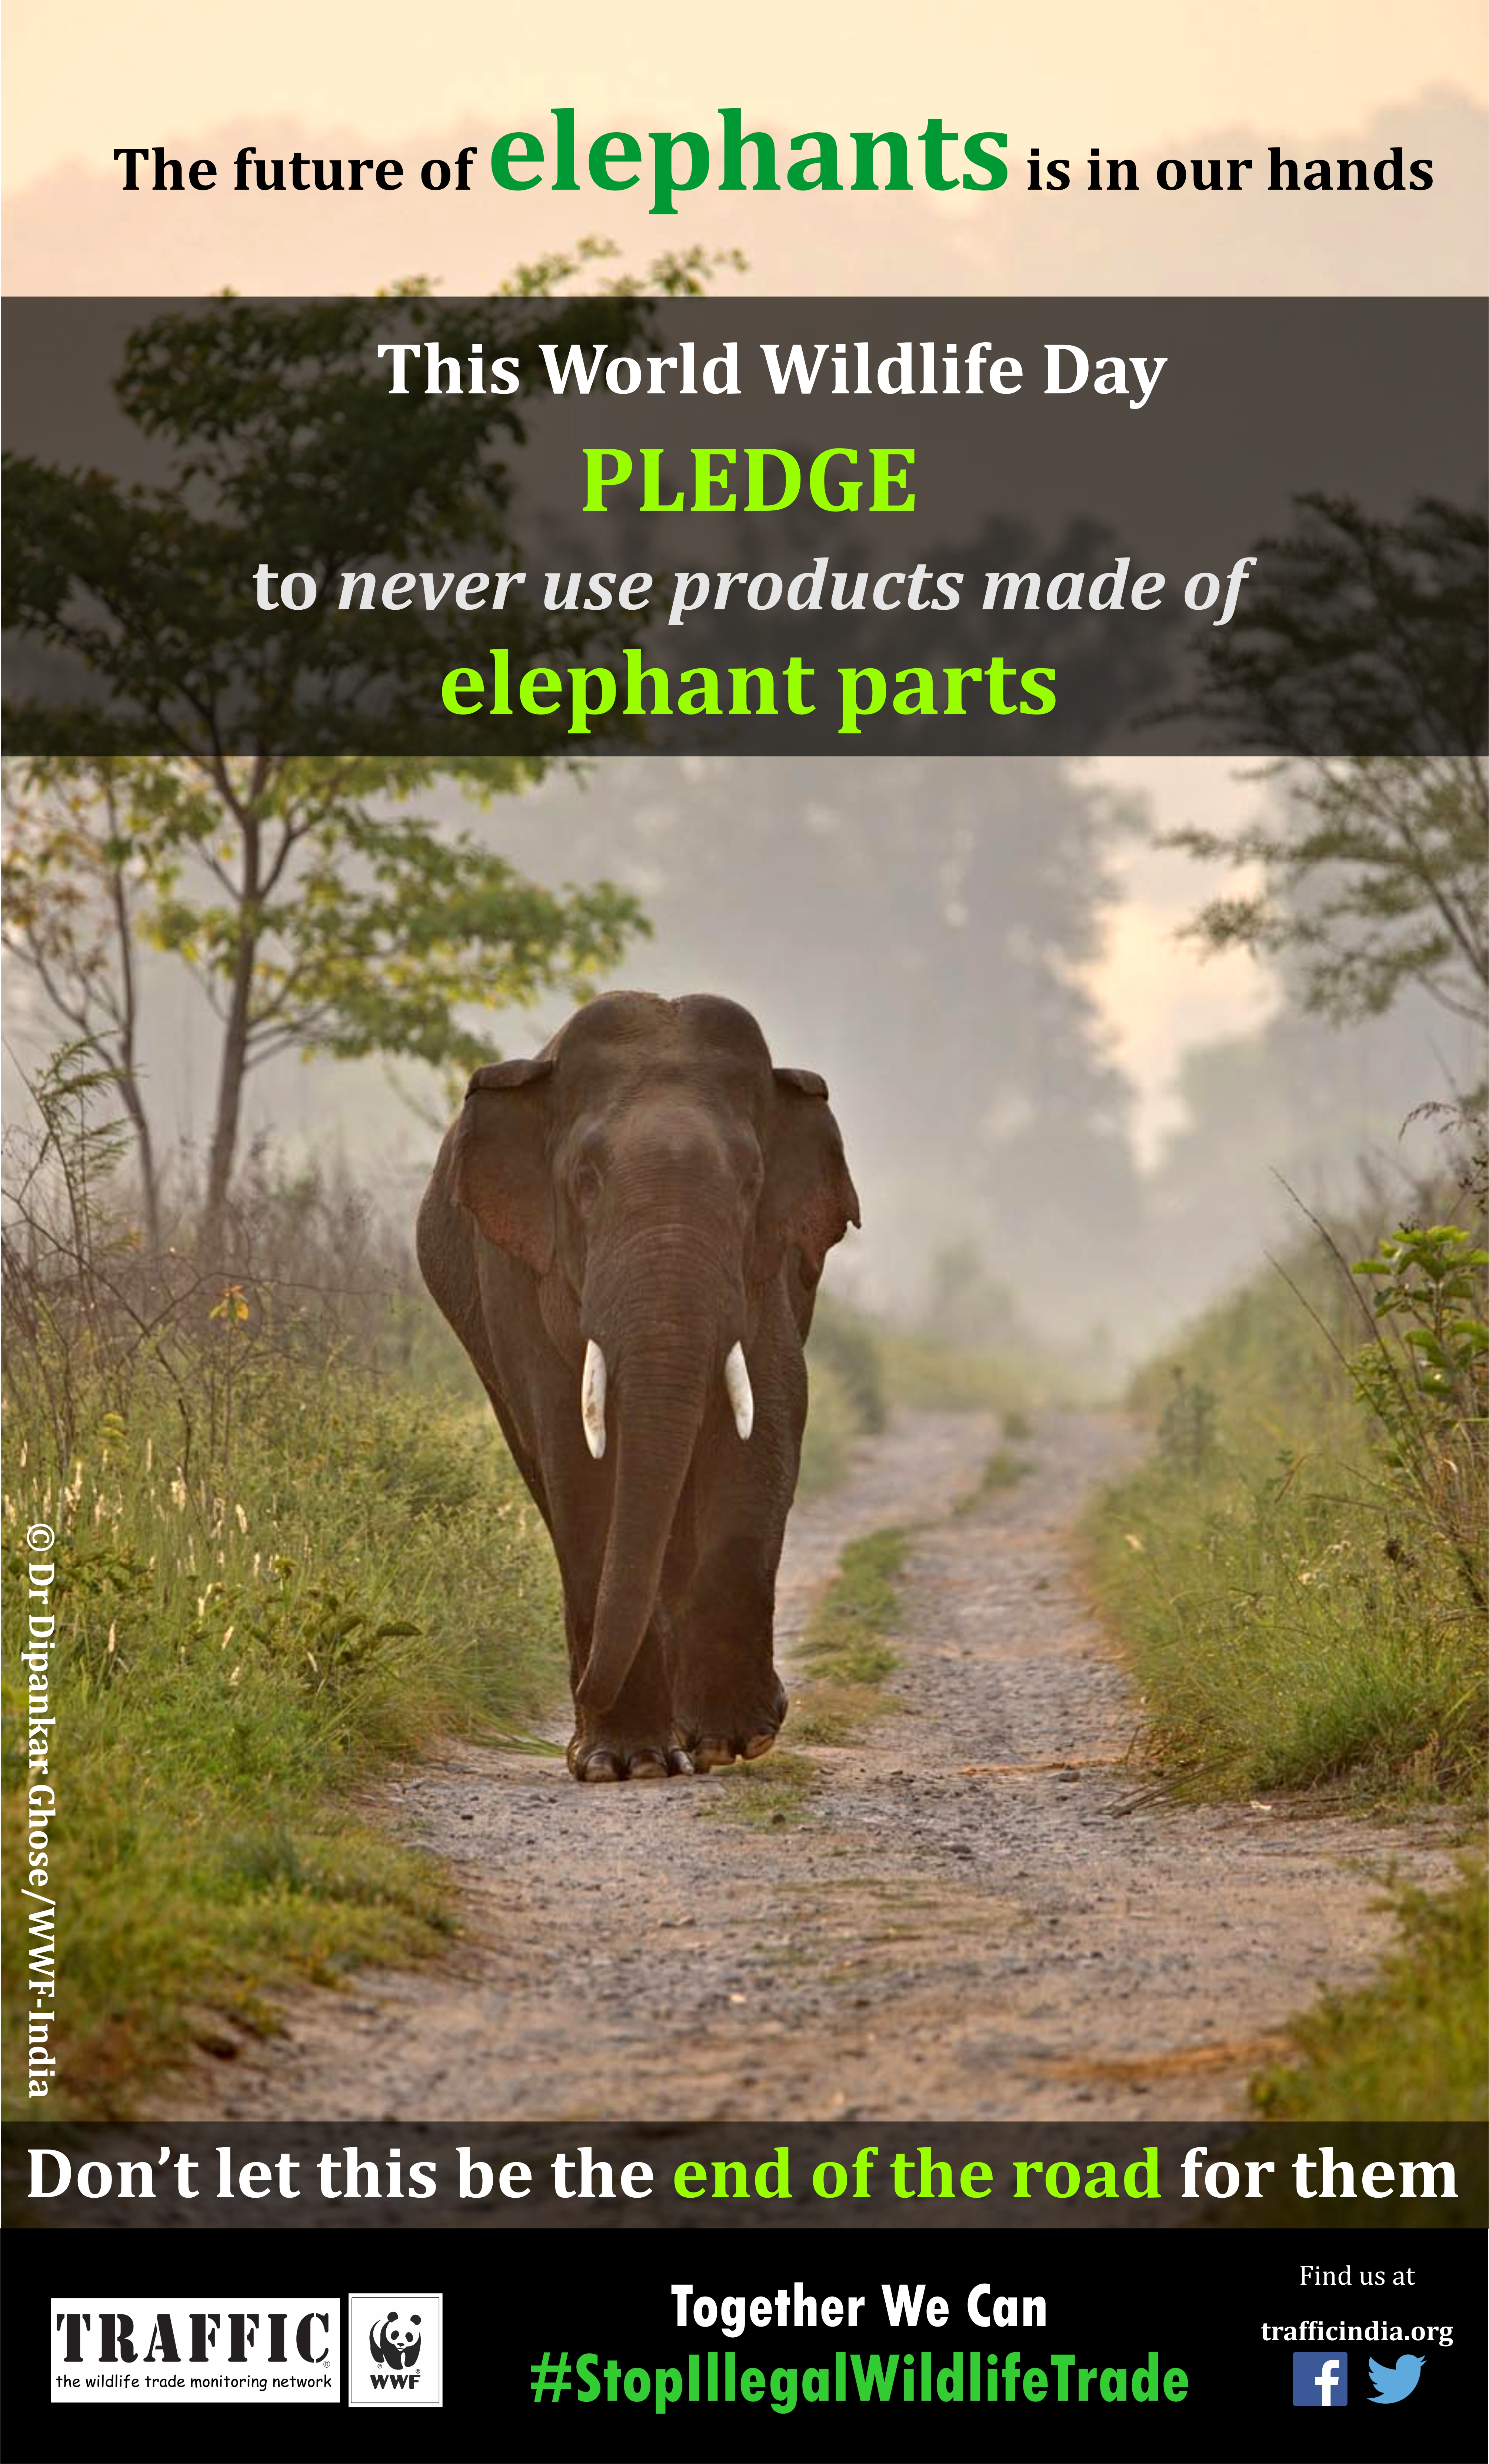 India's mammoth problem: Elephants threatened by poaching